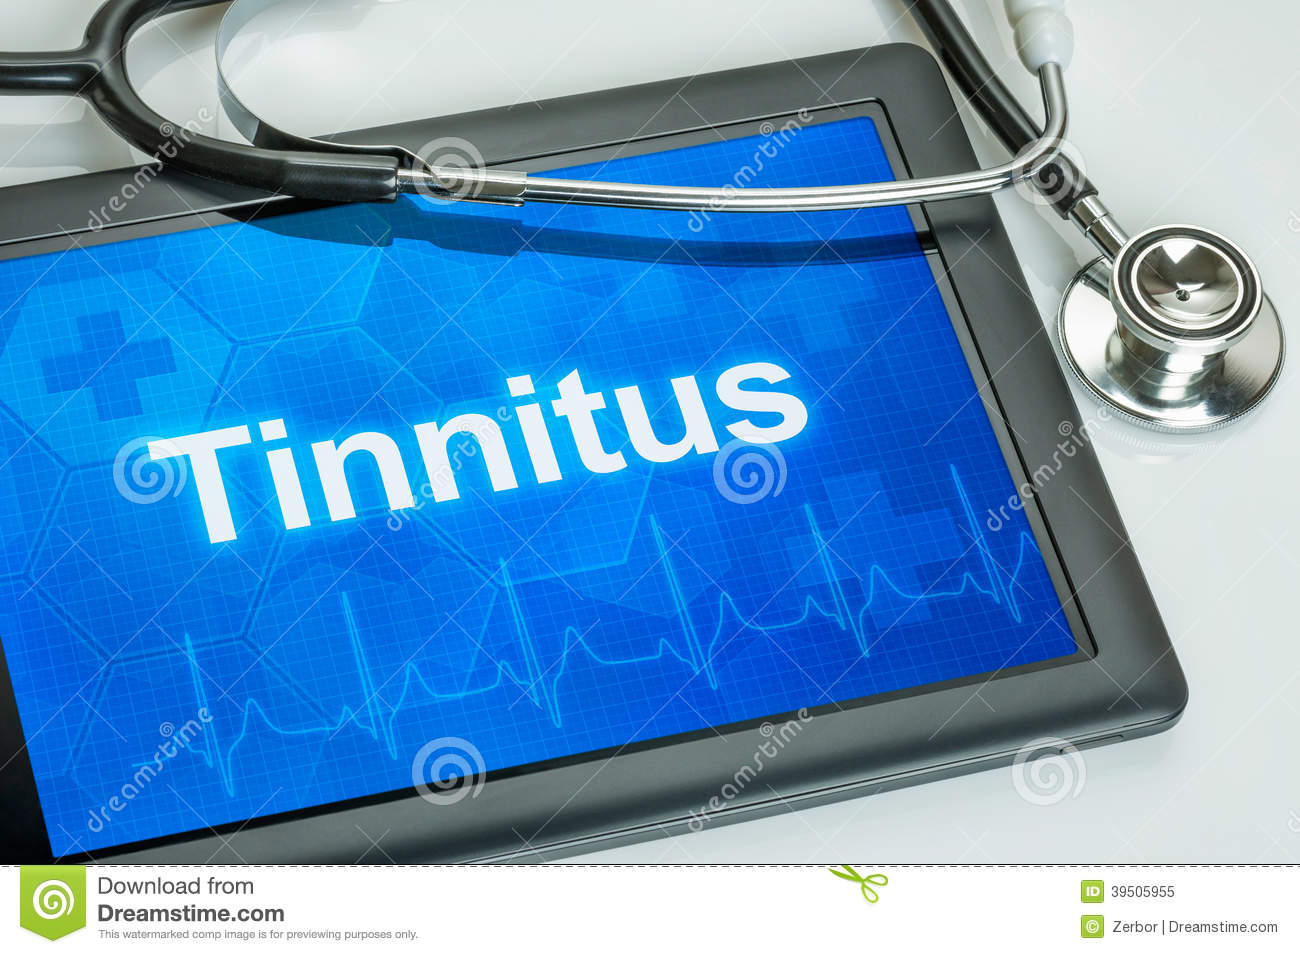 Tablet with the diagnosis tinnitus